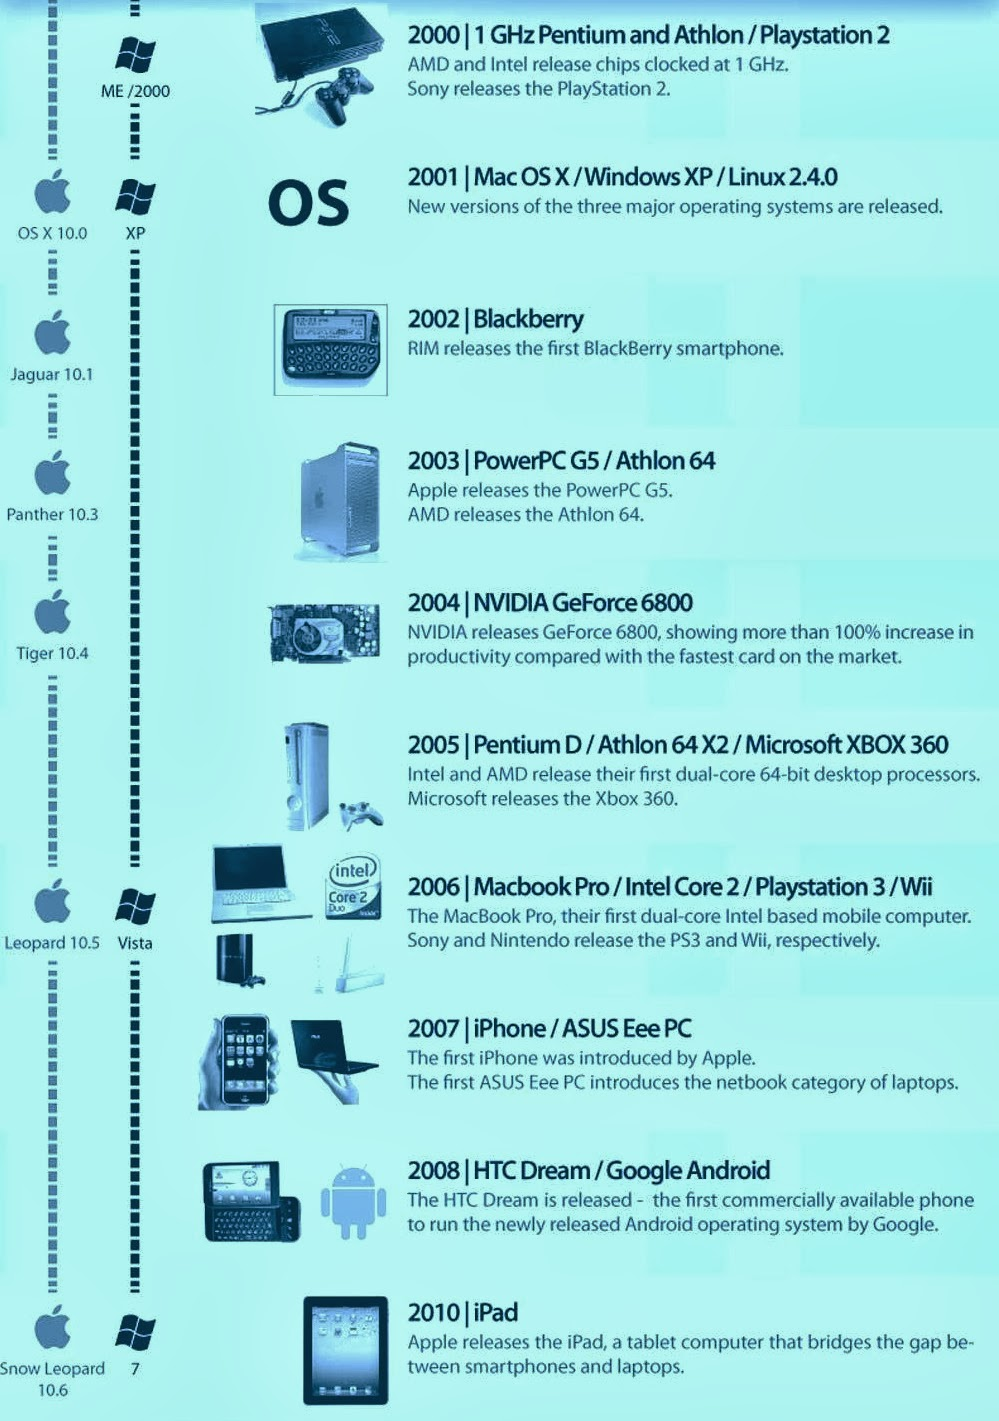 The Evolution of Computers: A Timeline - Durofy